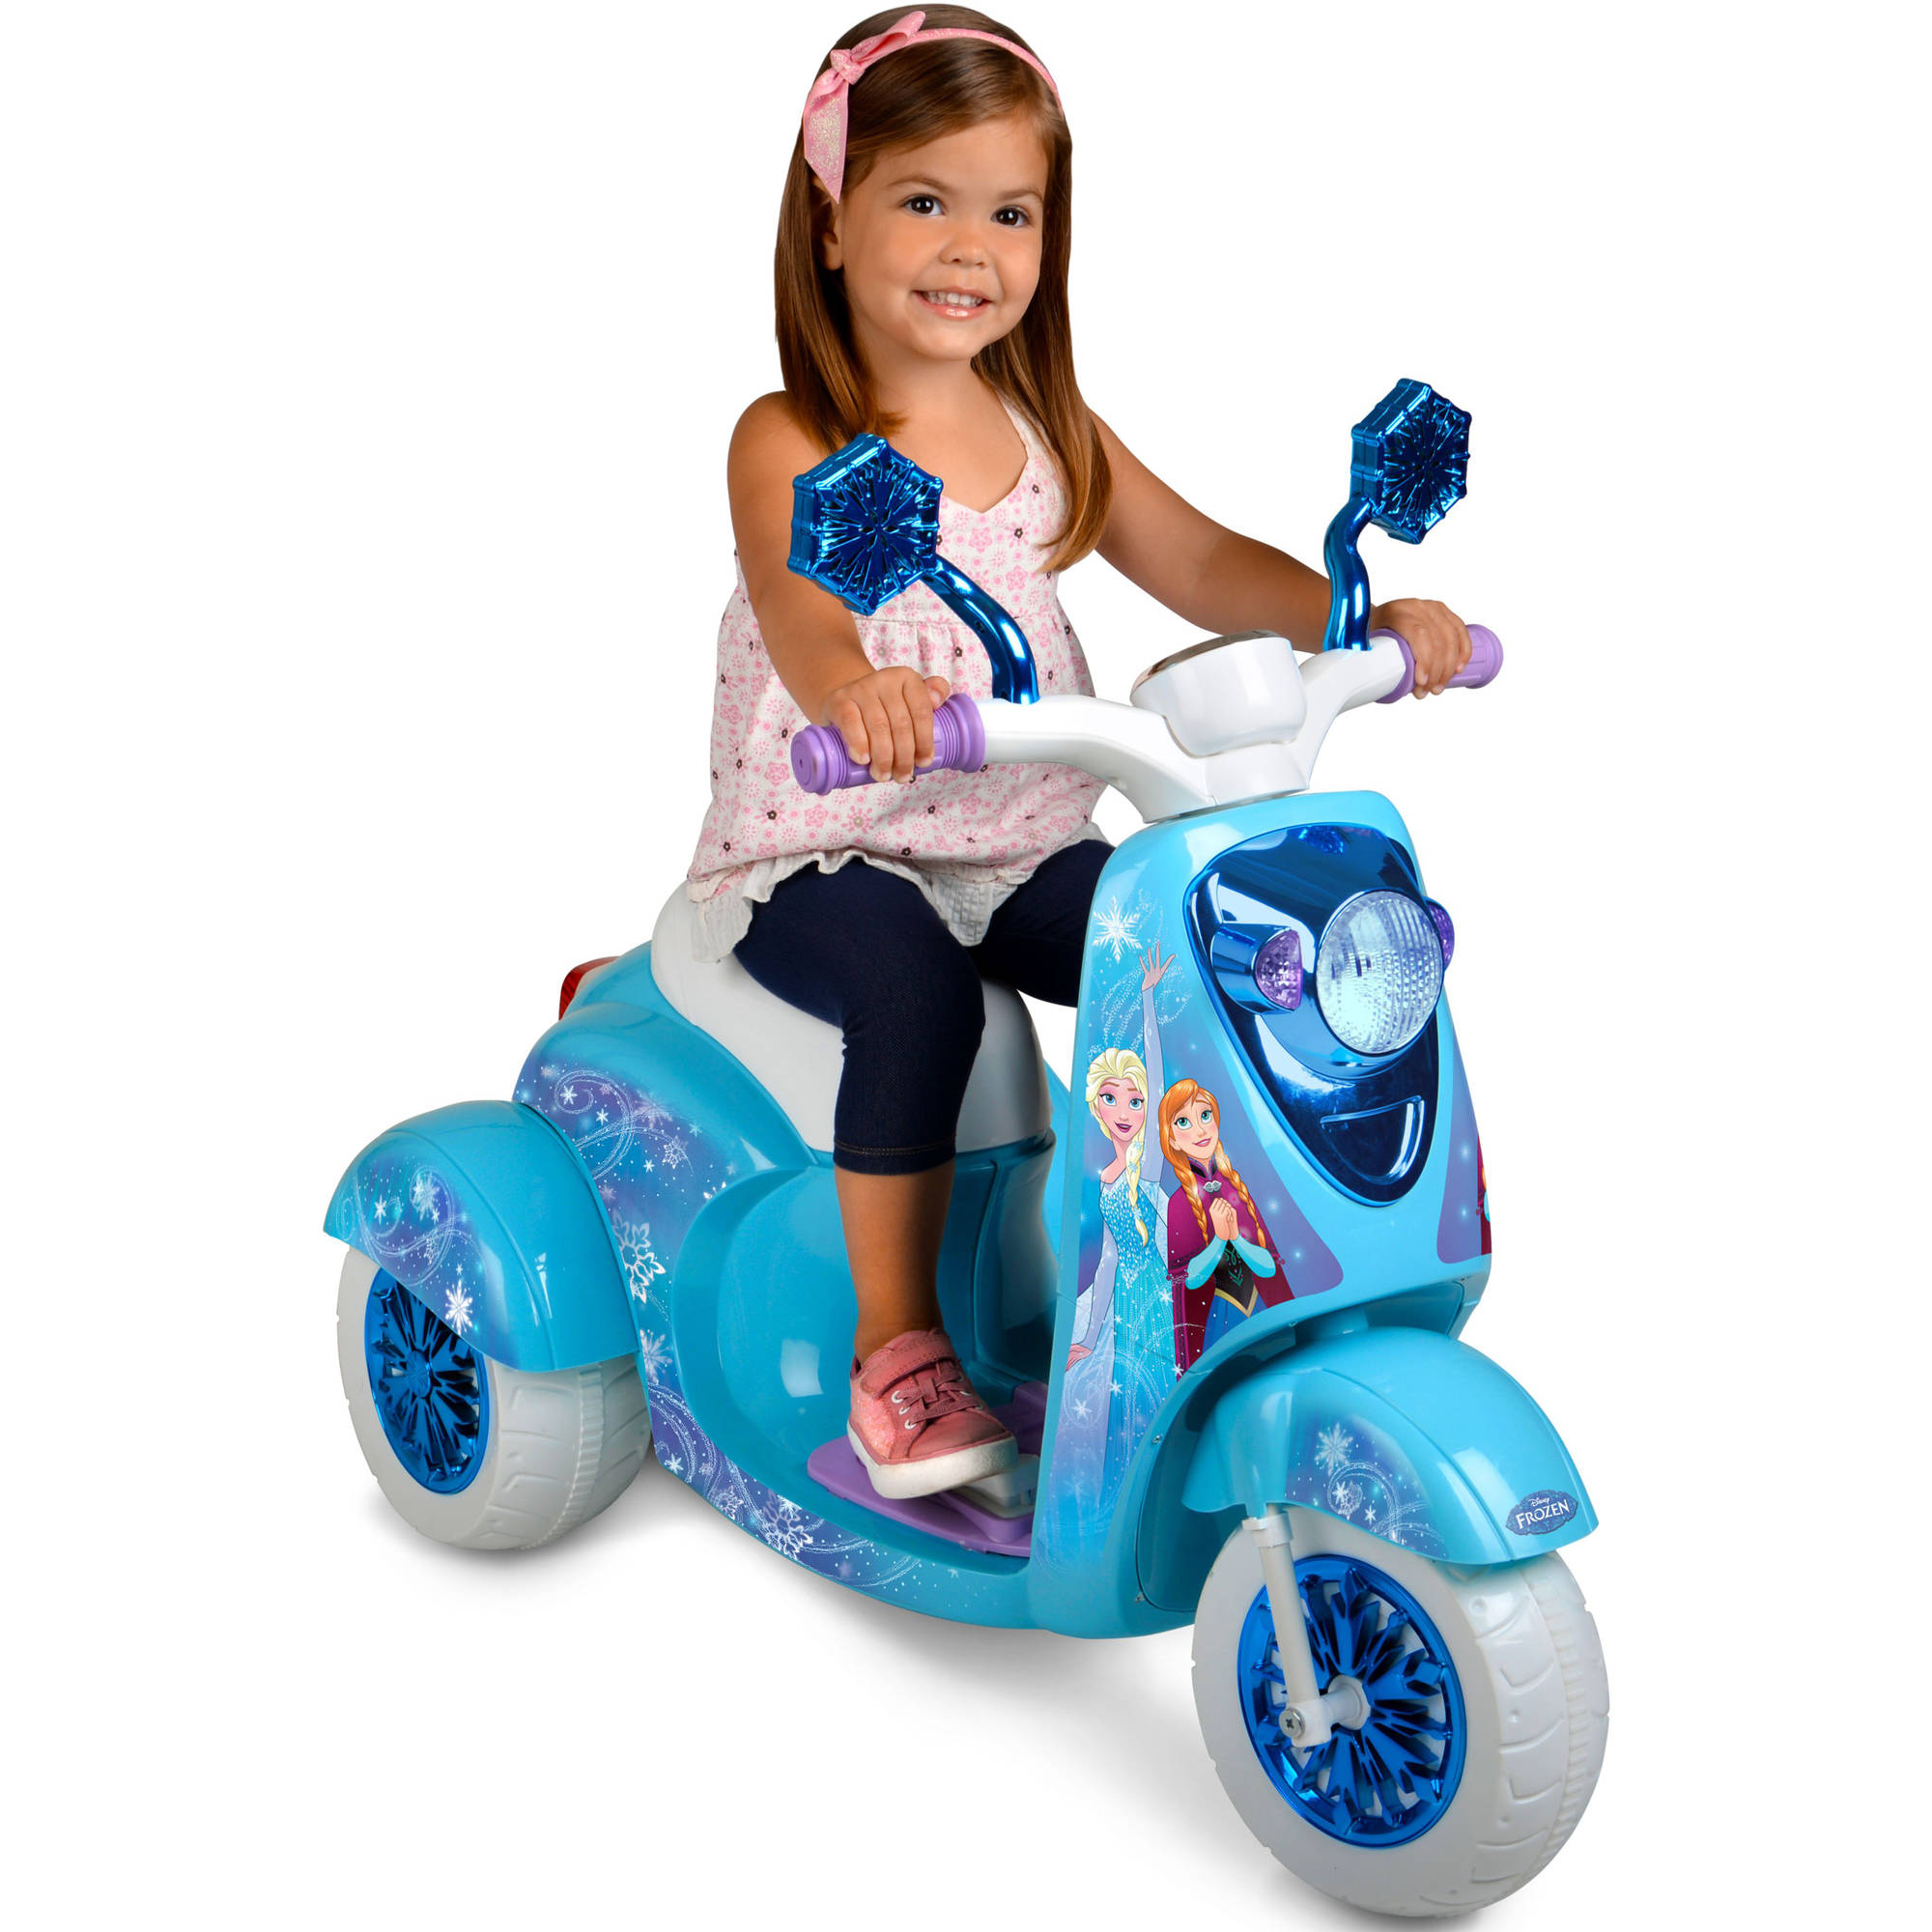 6V Disney Frozen 3-Wheel Scooter